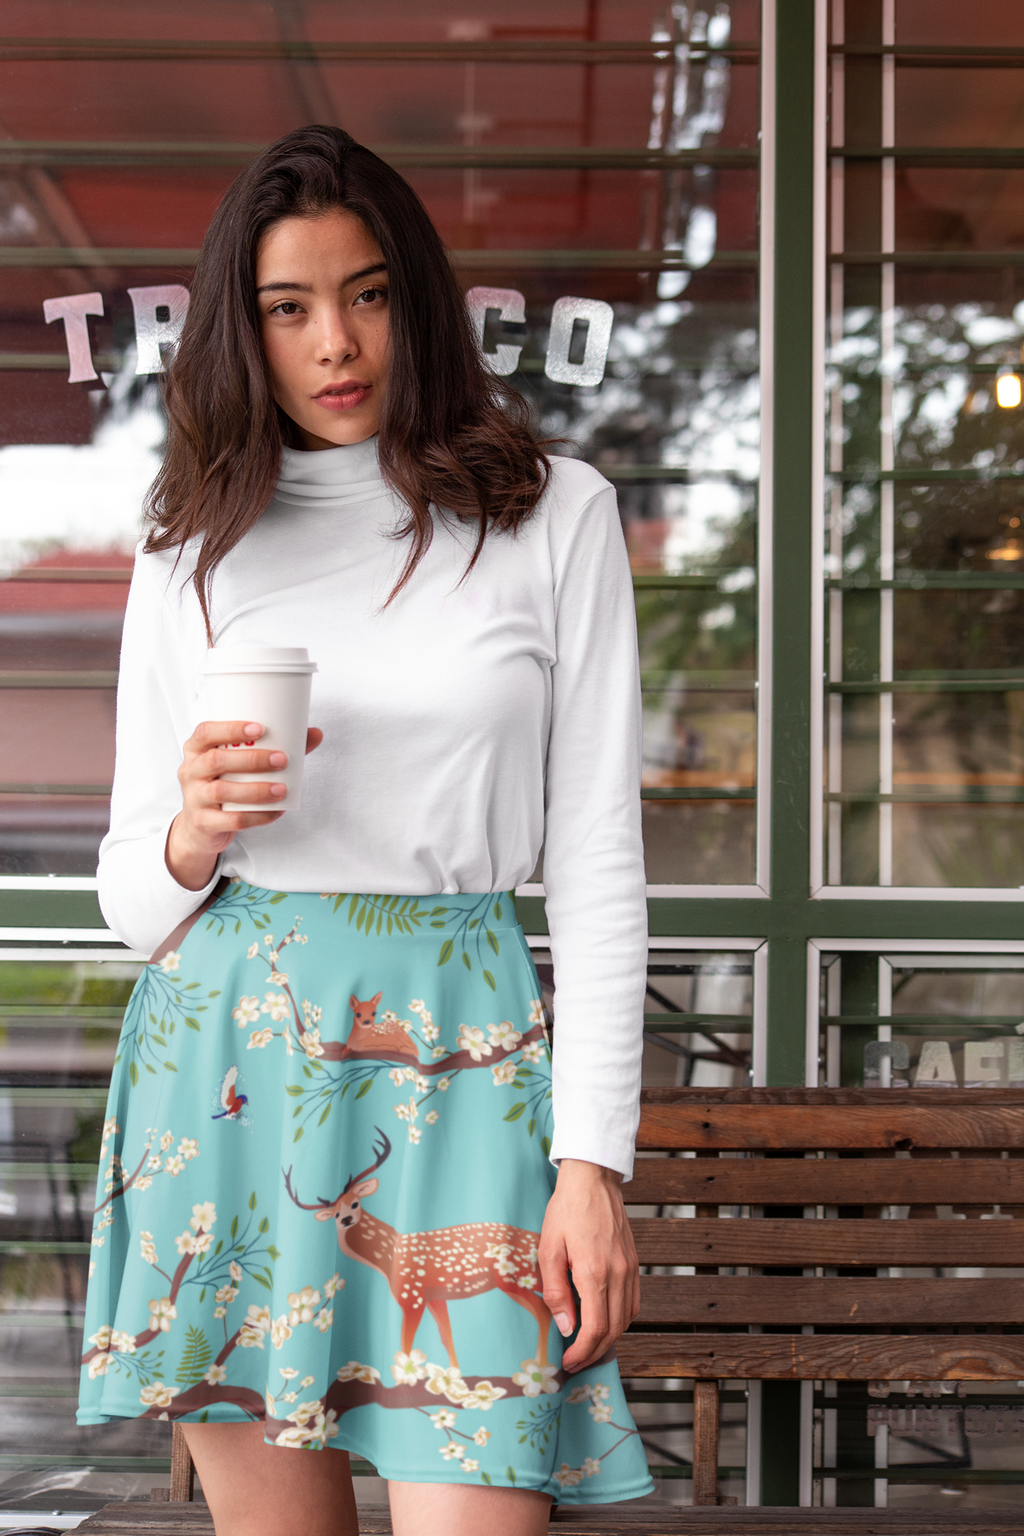 skater-skirt-mockup-of-a-woman-holding-a-coffee28666 (1).png